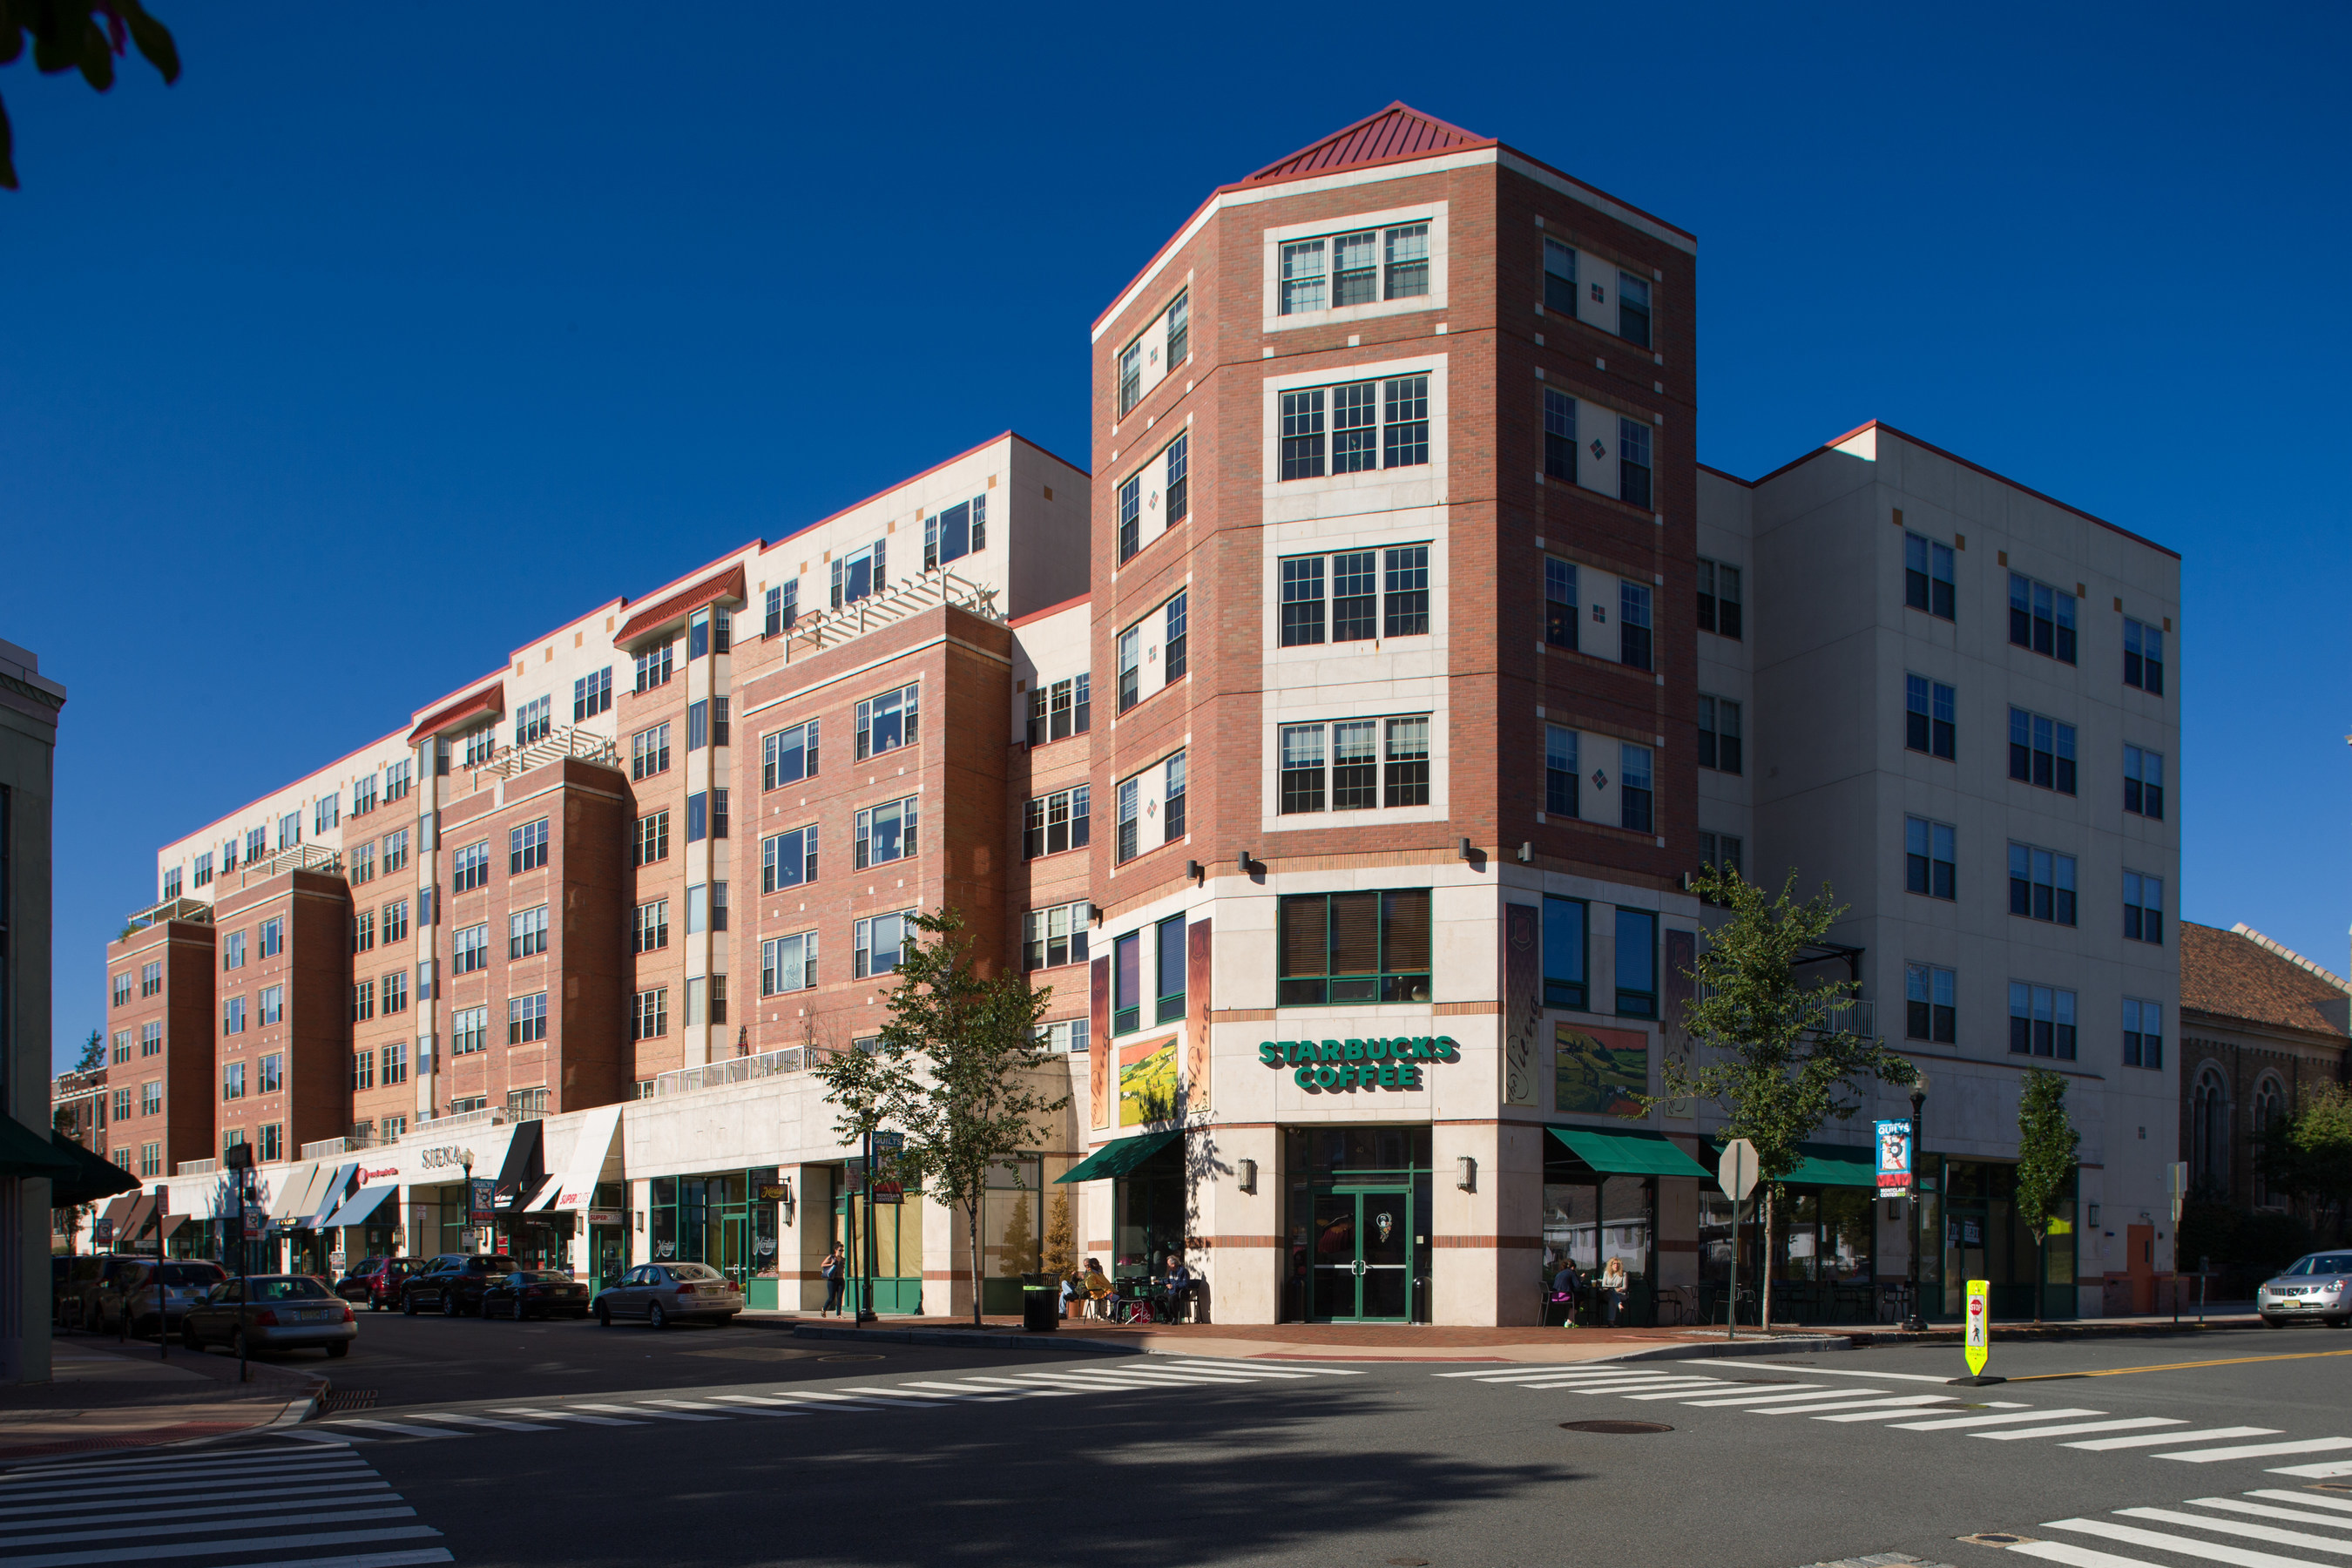 The Pinnacle Companies Announces Fully-Occupied Retail Space at The Siena Montclair